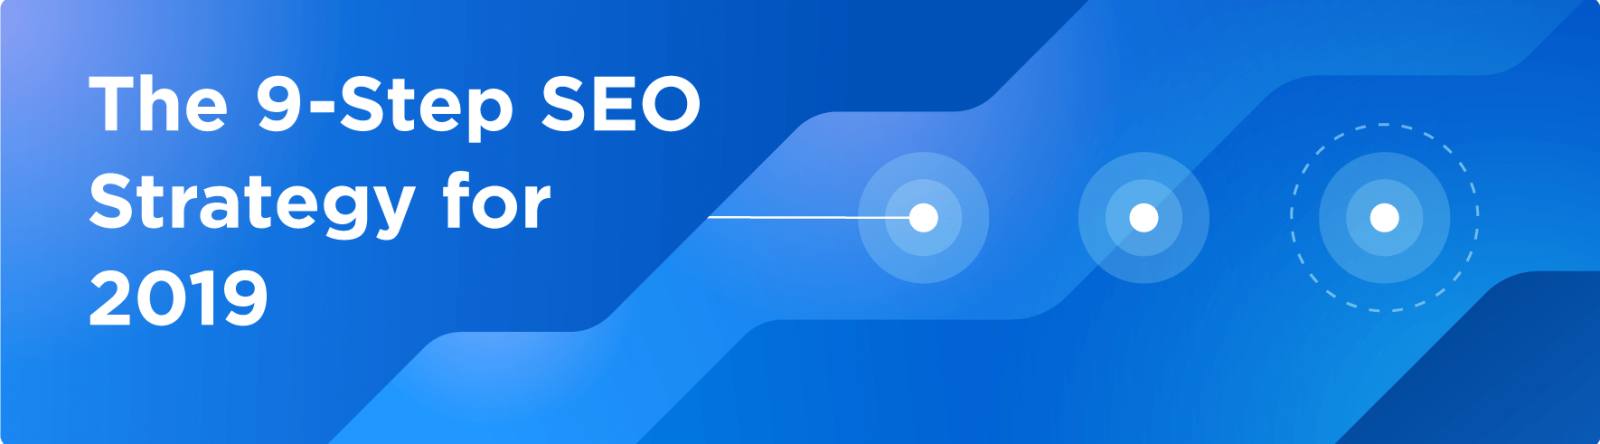 seo-strategy-banner